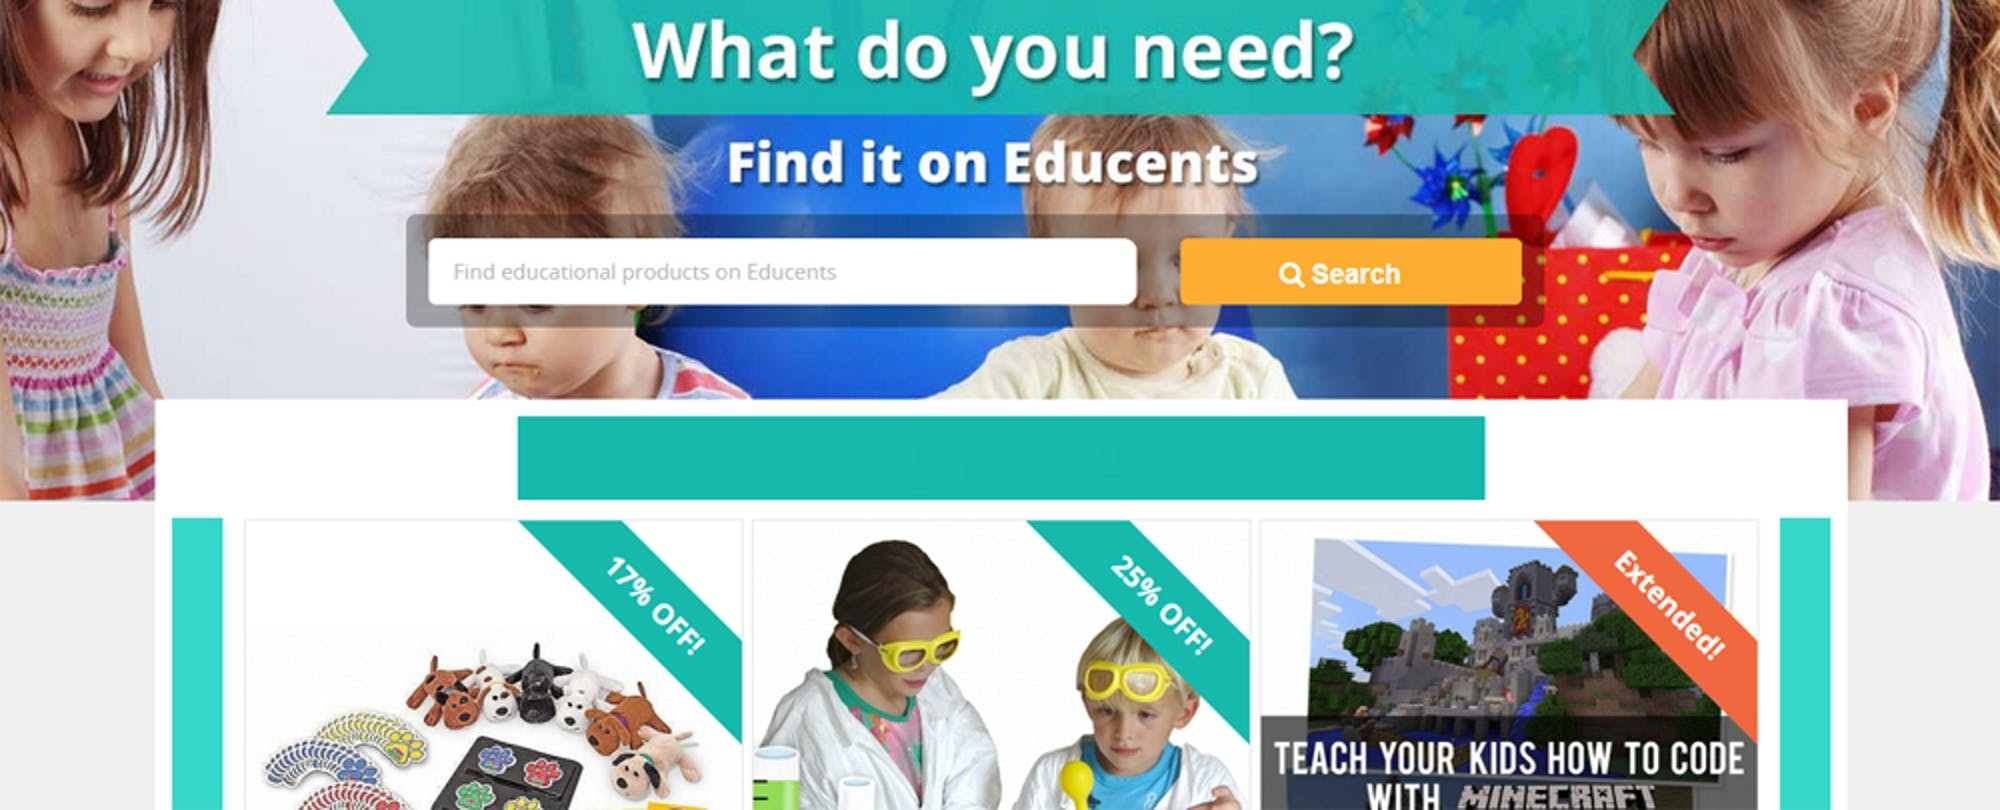 Dollars and Sense: Educents Raises $2.9M to Grow Instructional Materials Marketplace